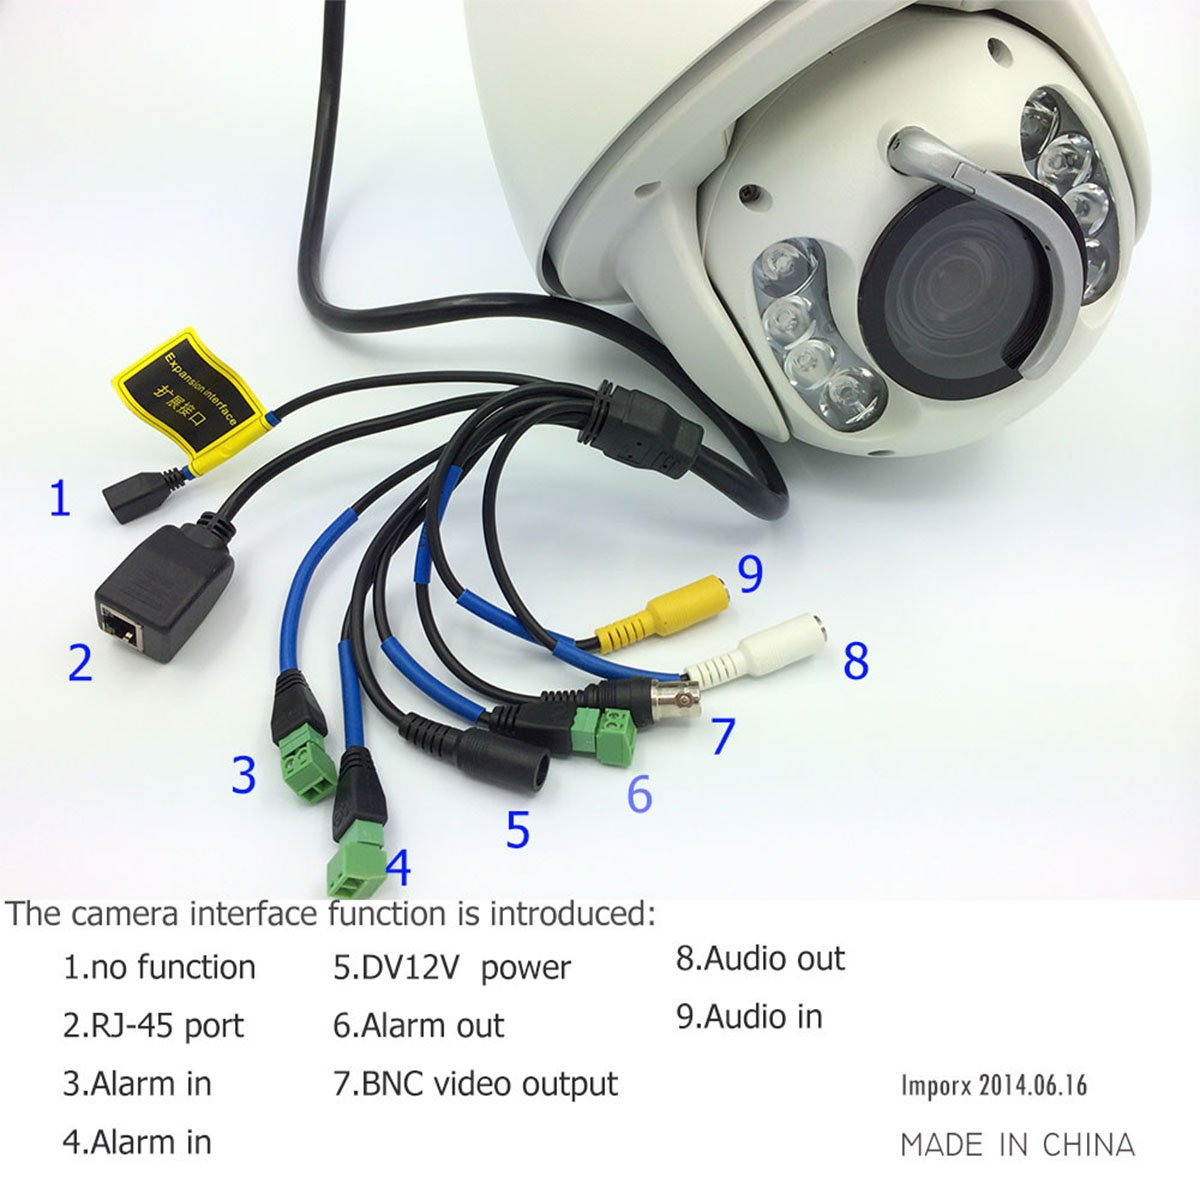 Bosch Ptz Camera Wiring Diagram Manual Pelco Ccd Colorful Motif Electrical And